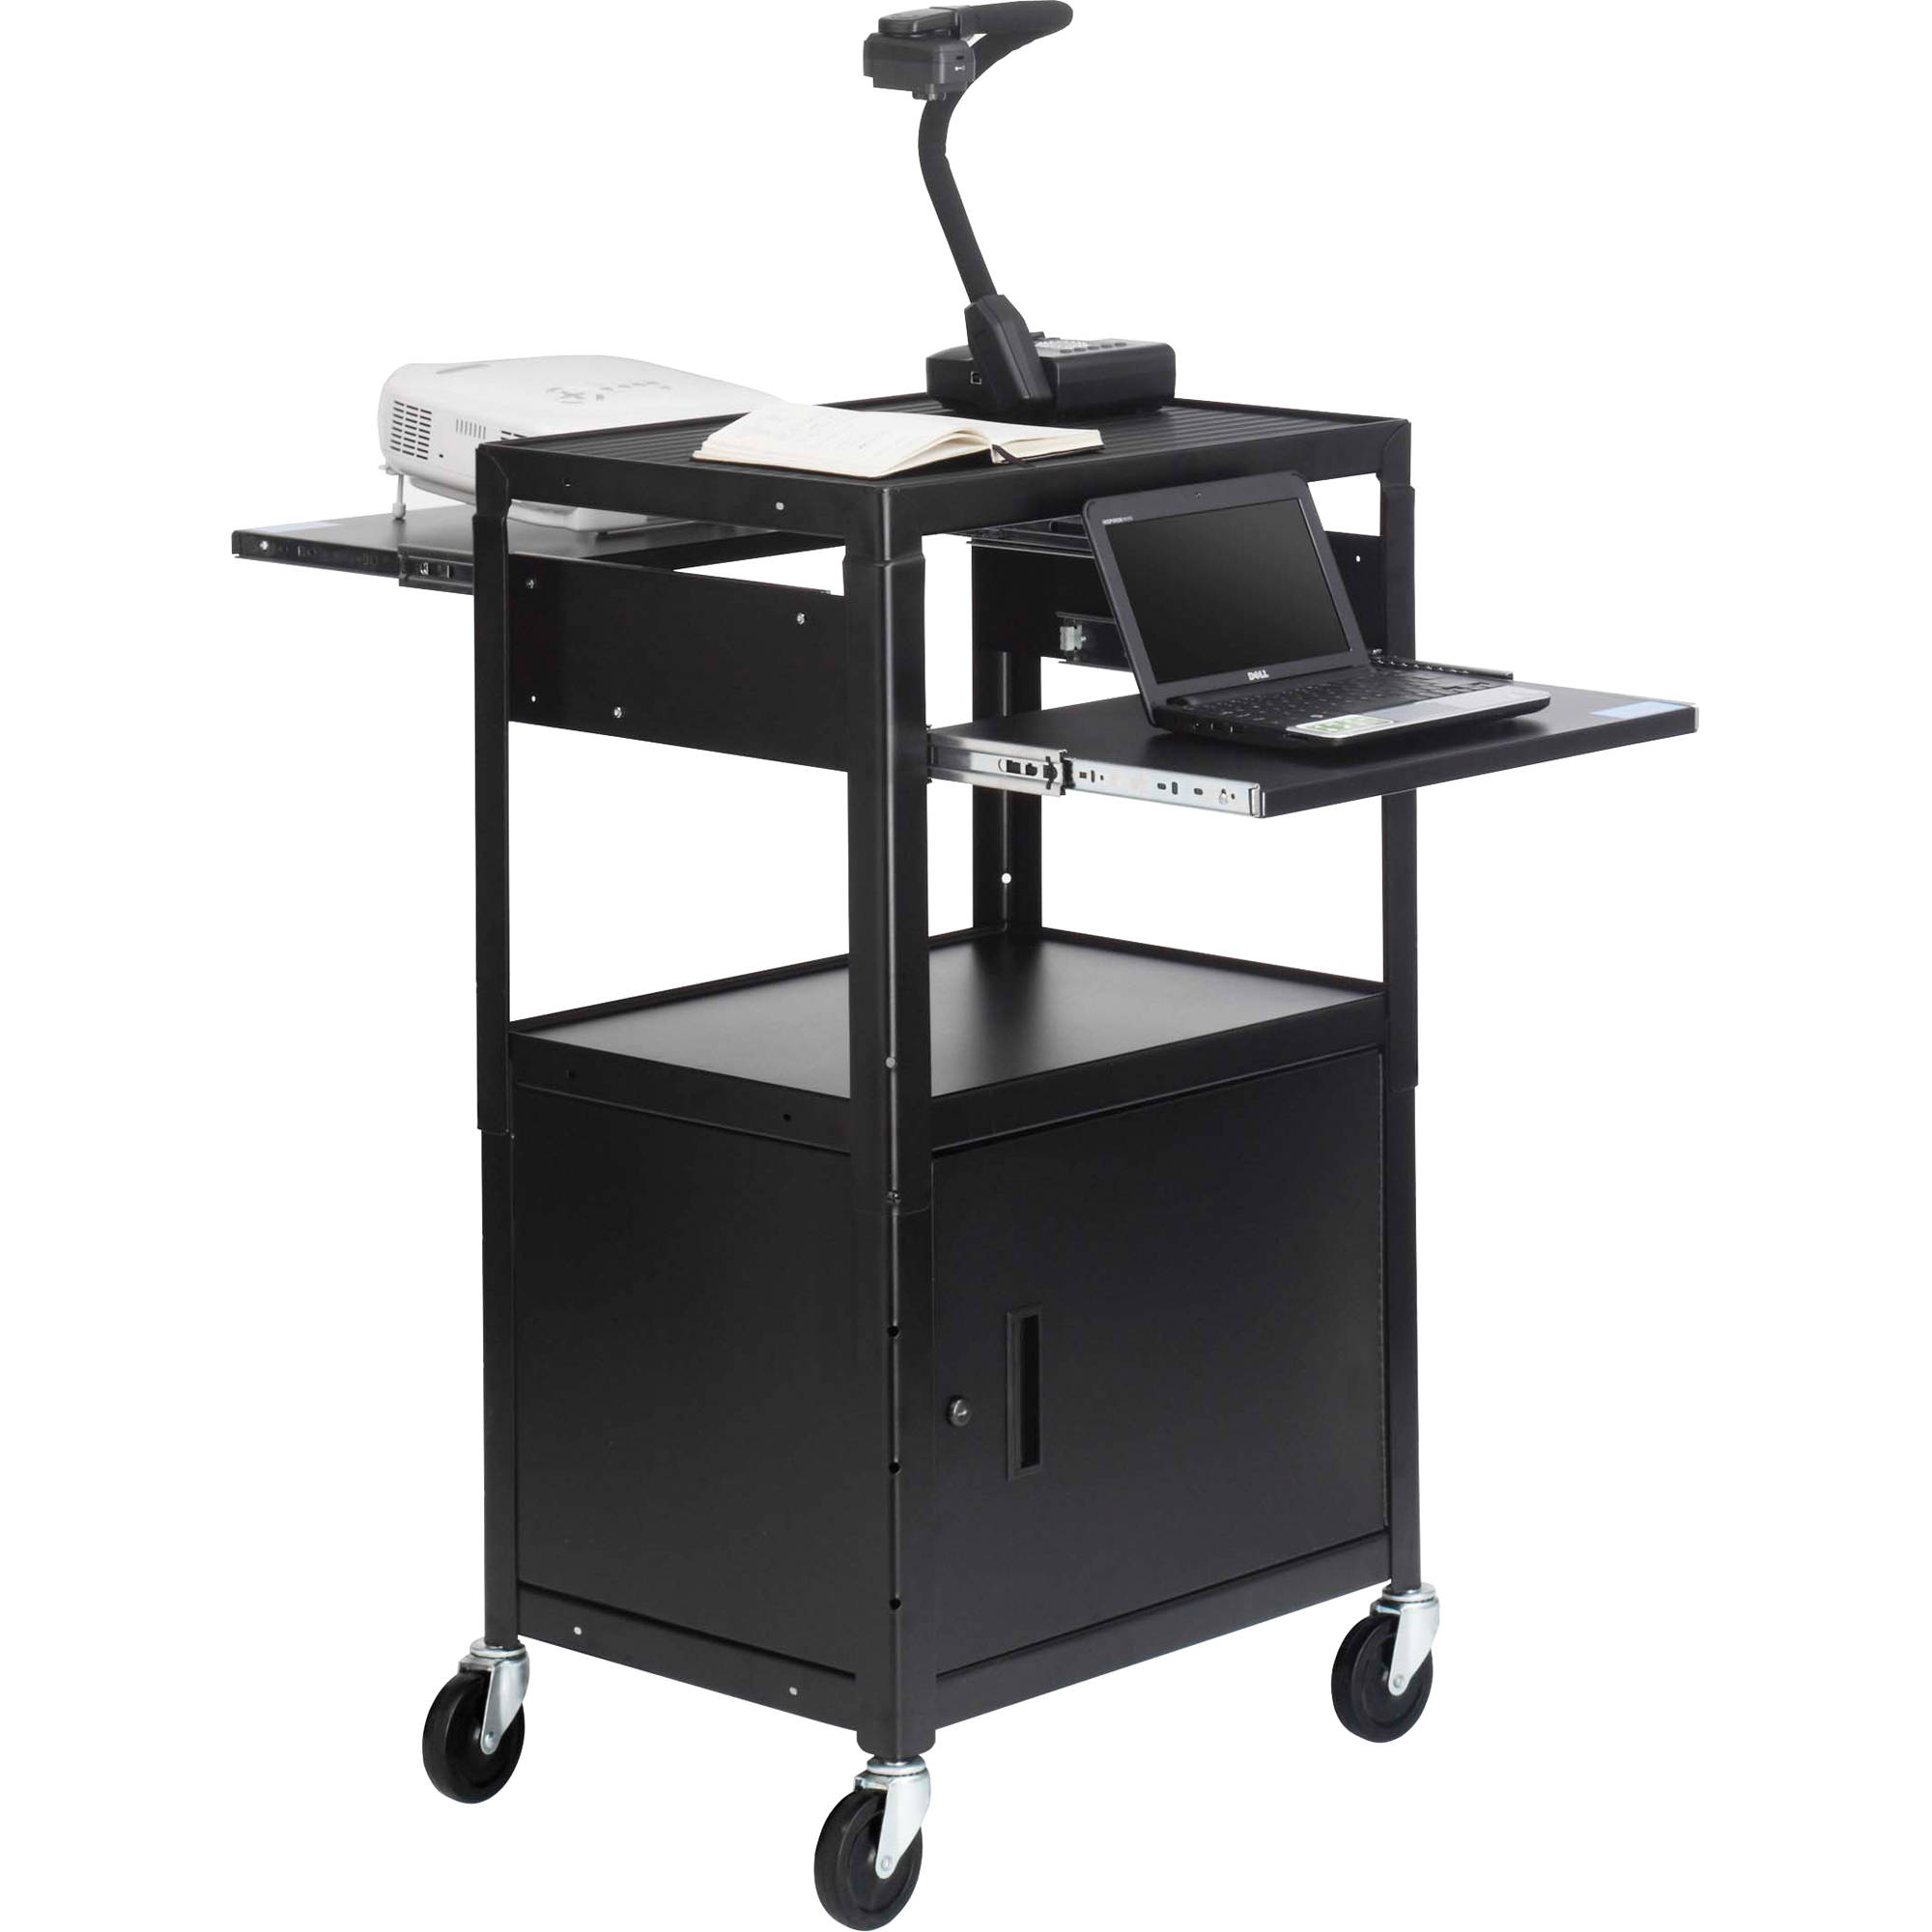 shown with optional accessories - Av Cart